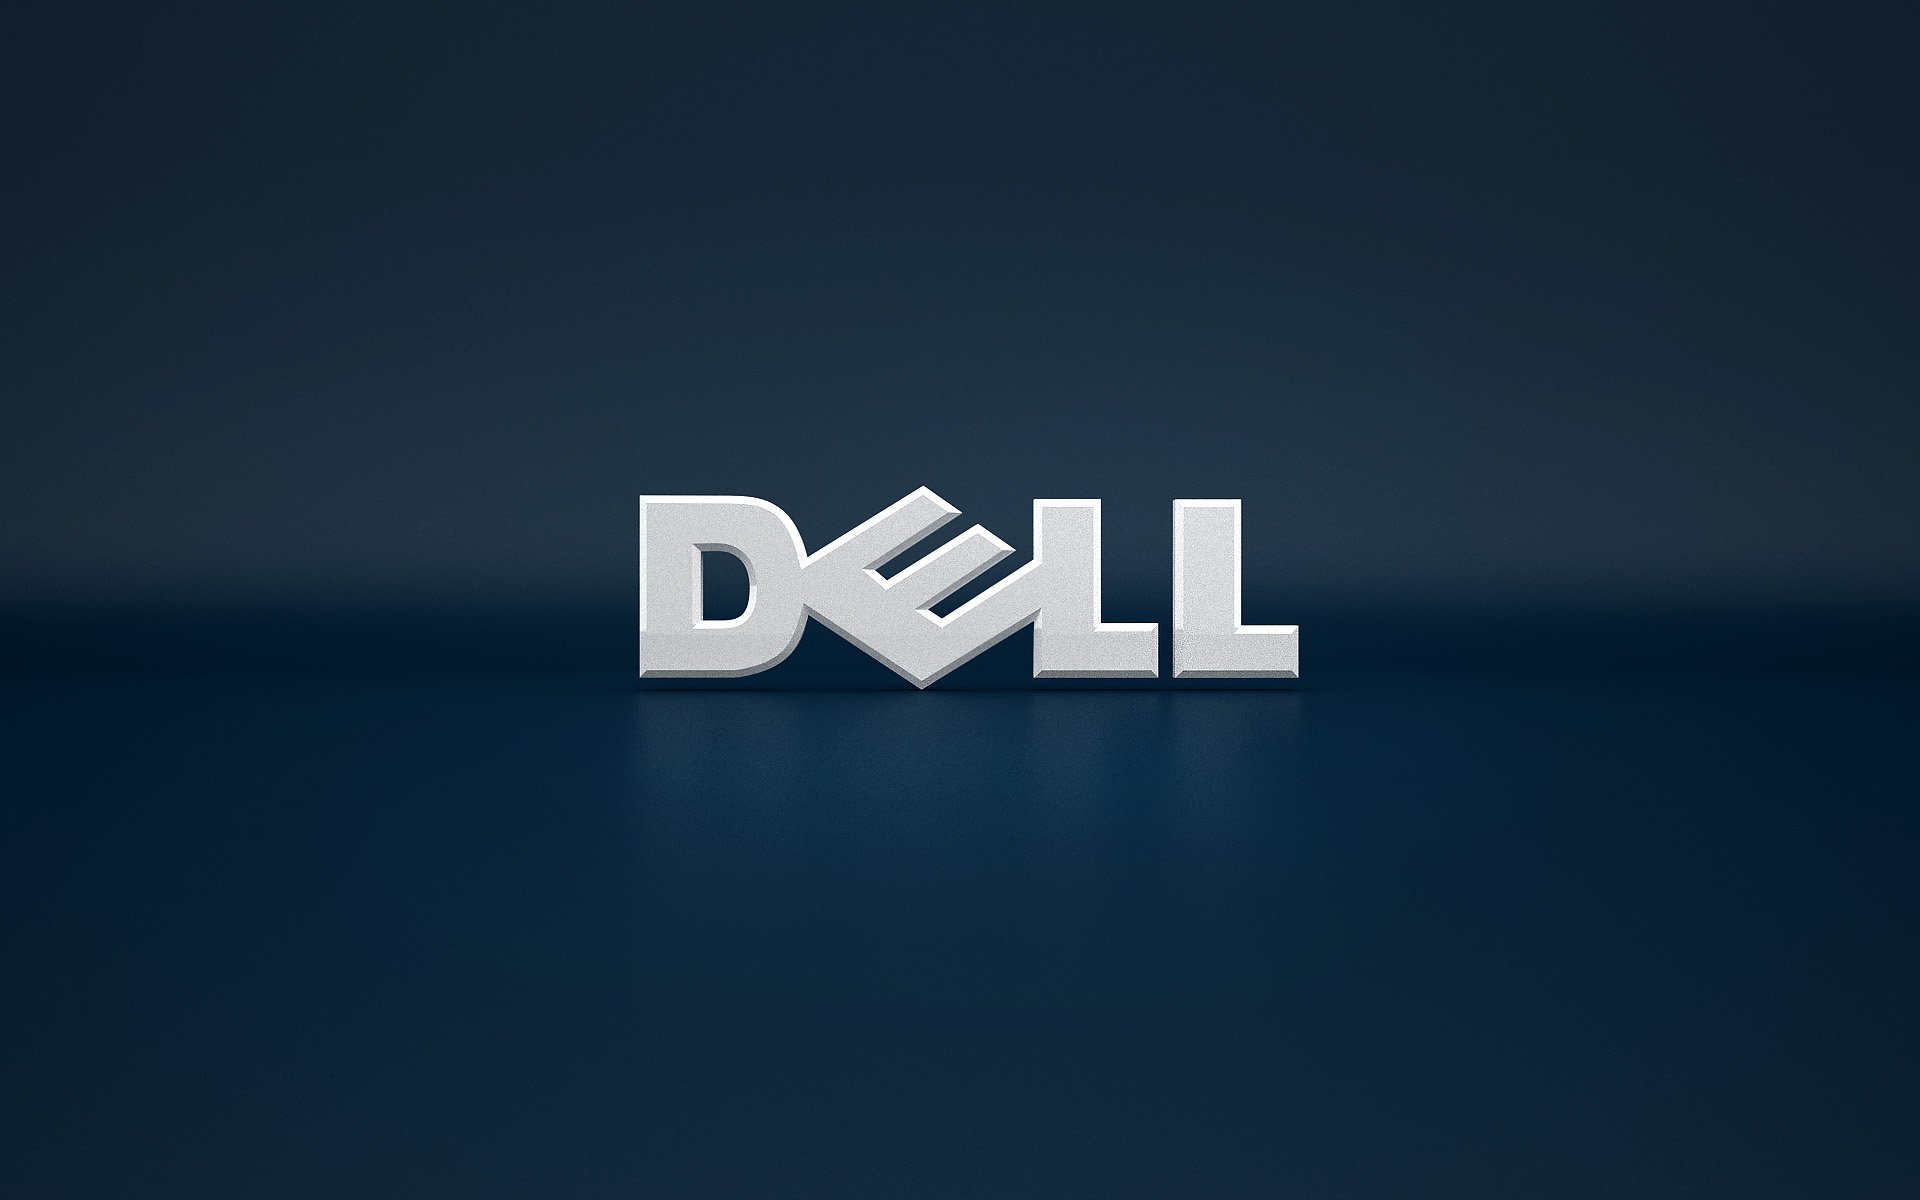 Dell Exploits NIT-K Talent Pool To Churn Out 'Unique' Solutions To Specific Problems!